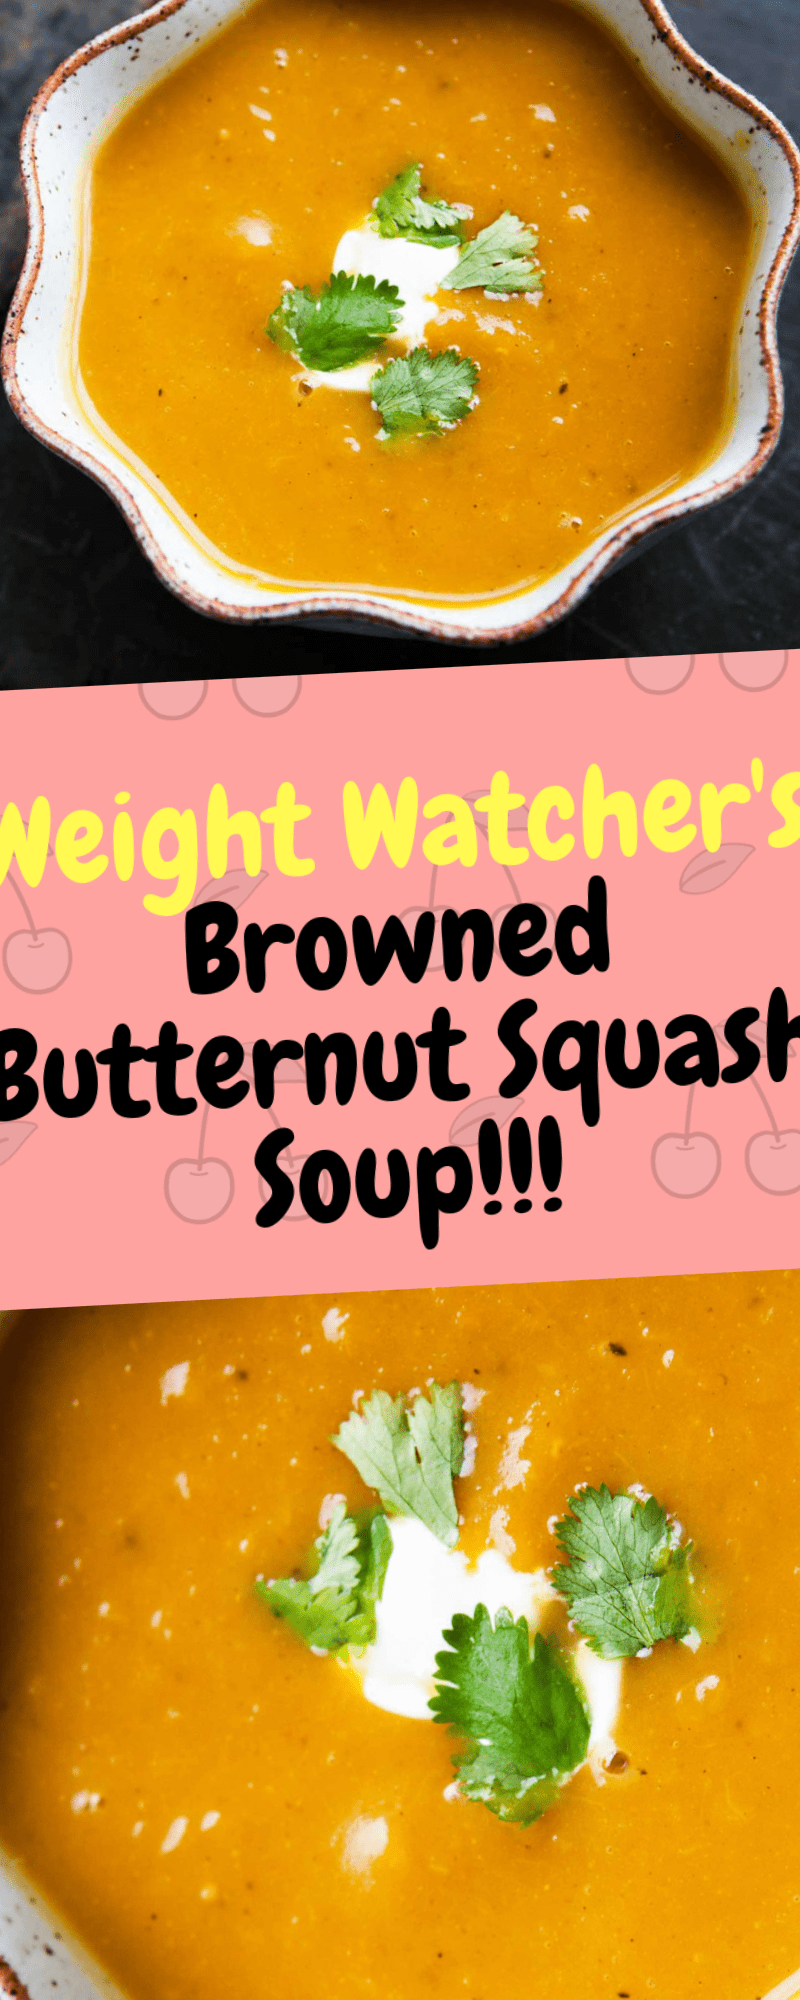 Makes 6 servings | 2 smart points Serving size: 1 | Calories: 115 | Fat: 6 | Saturated fat: 4 | Carbohydrates: 16 | Sugar: 5 | Fiber: 4 | Protein: 1 It's been really cold outside and when it gets cold out, all I want is some... Continue Reading → #butternutsquashsoup